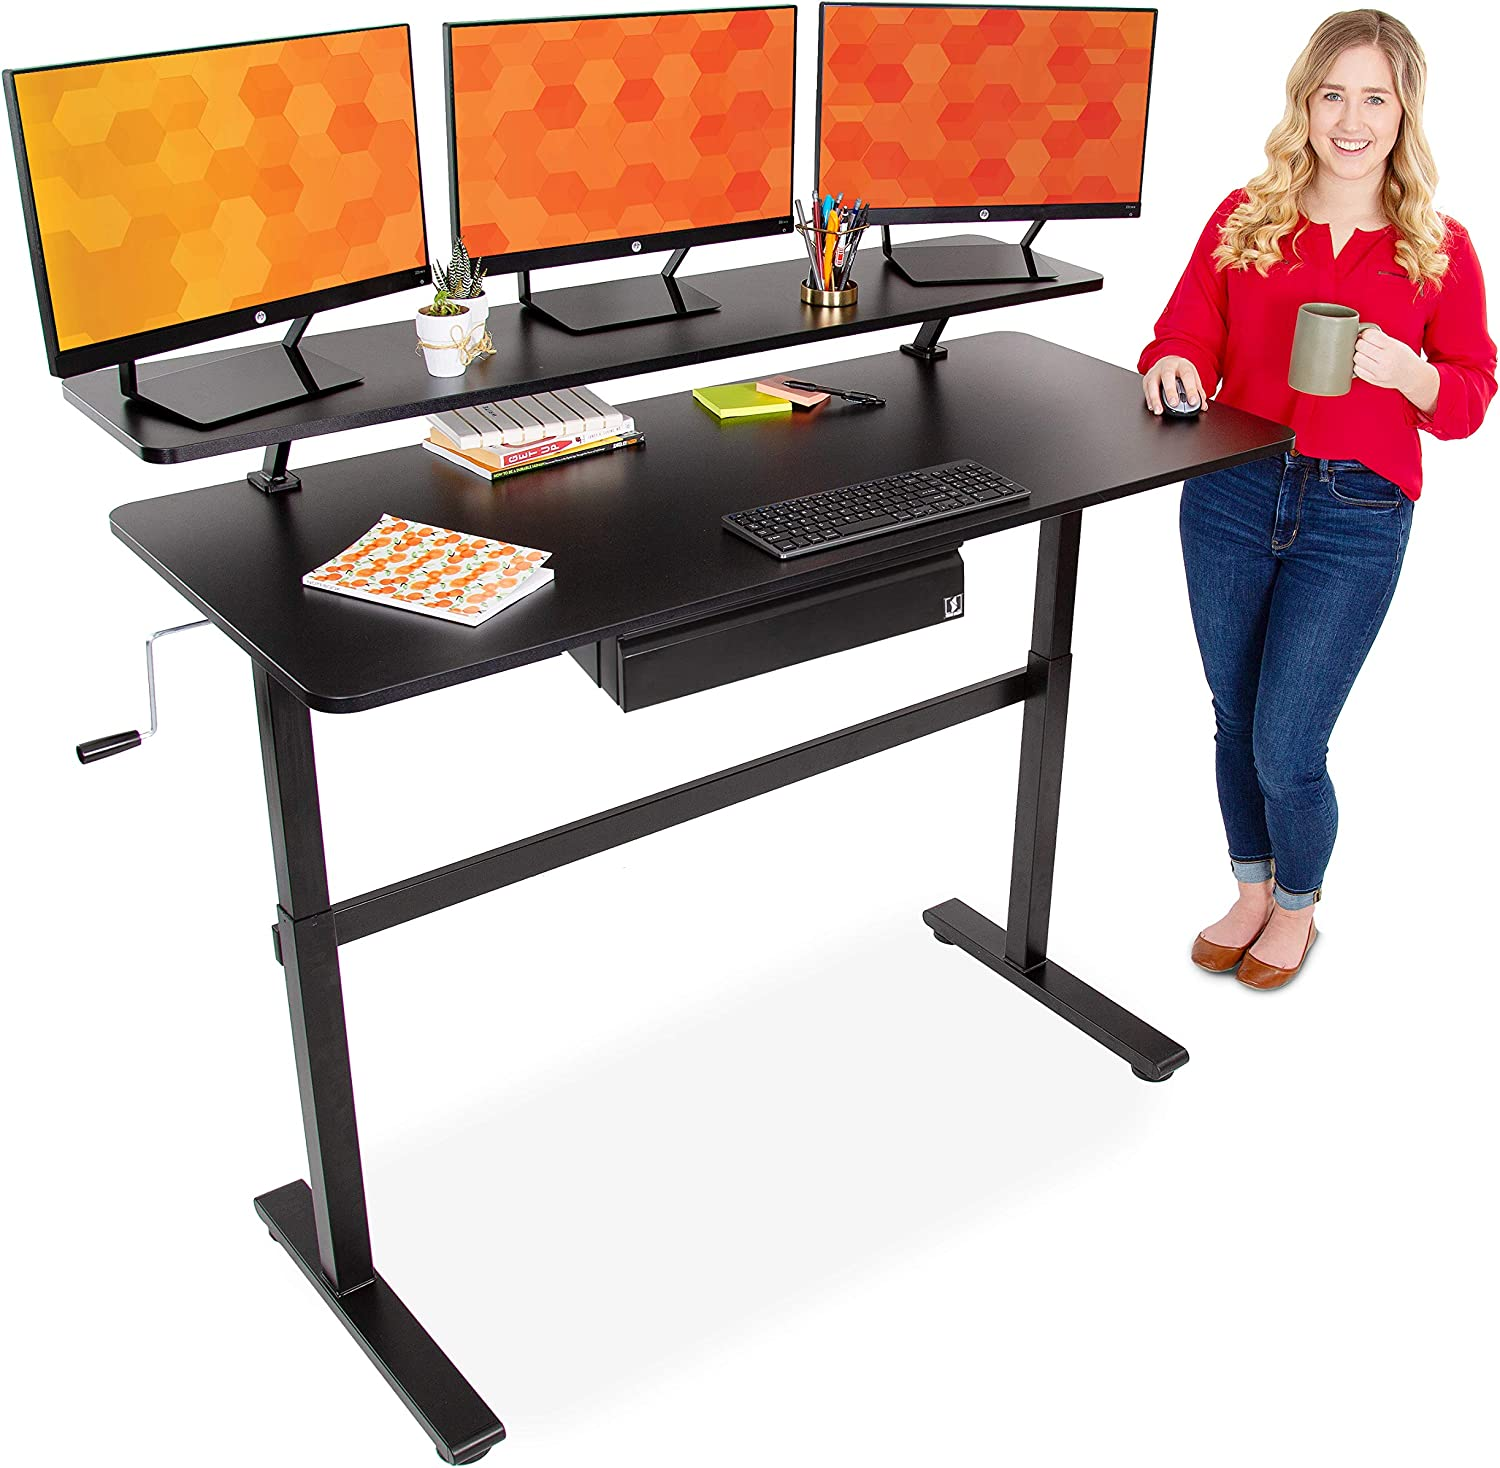 Stand Steady Tranzendesk 55 Inch Standing Desk with Clamp On Shelf & Under Desk Drawer | Easy Crank Height Adjustable Stand Up Workstation with Attachable Monitor Riser & Extra Storage (55 in/Black)